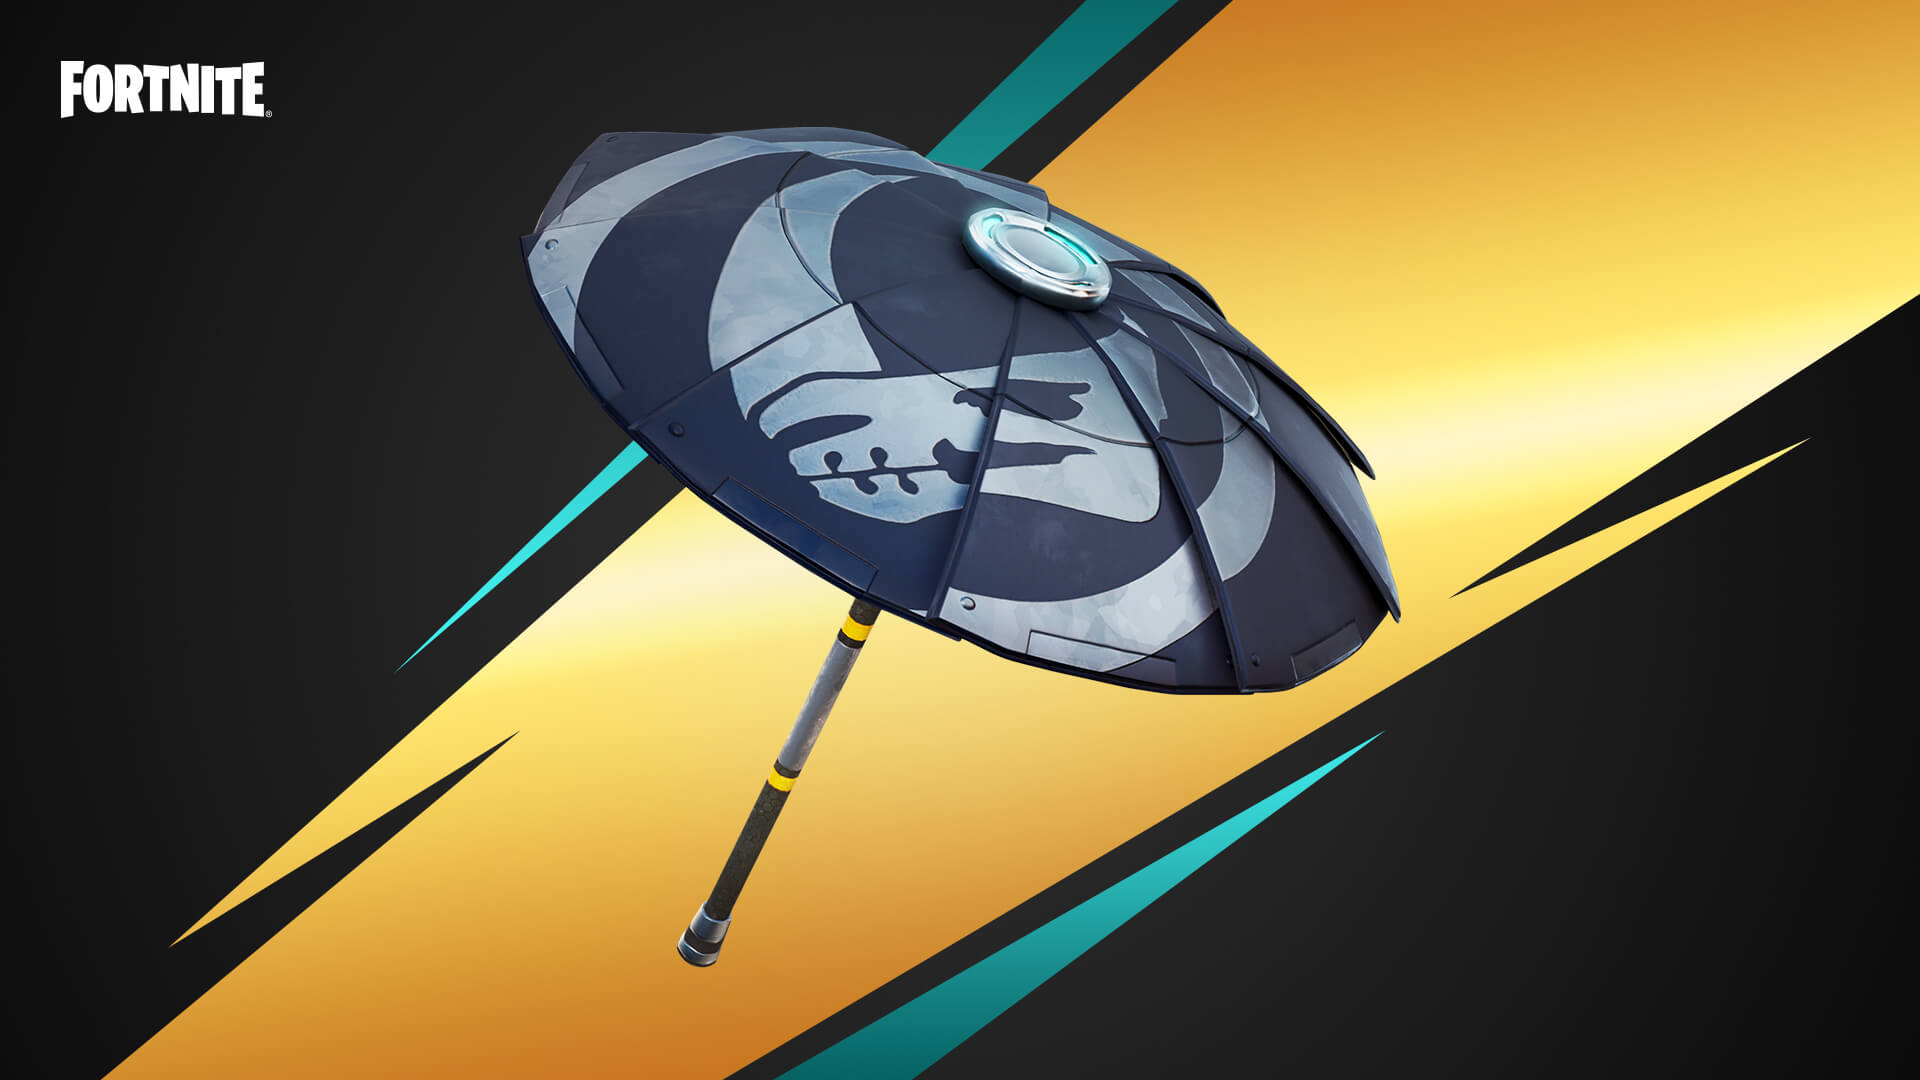 Fortnite Mando Beskar Umbrella